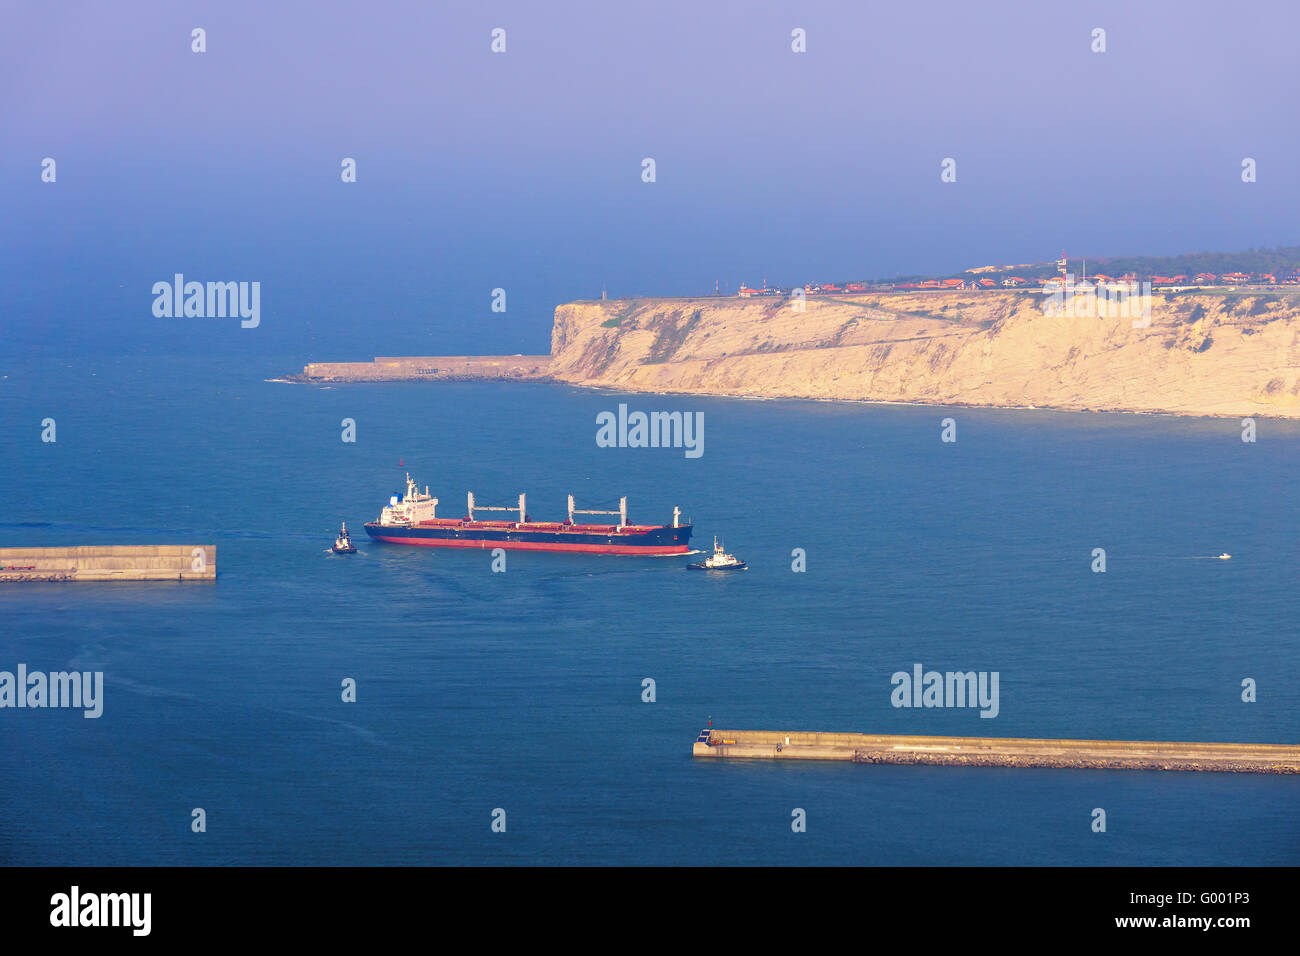 oil tanker ship entering at the bilbao harbor with tugboat assistant - Stock Image